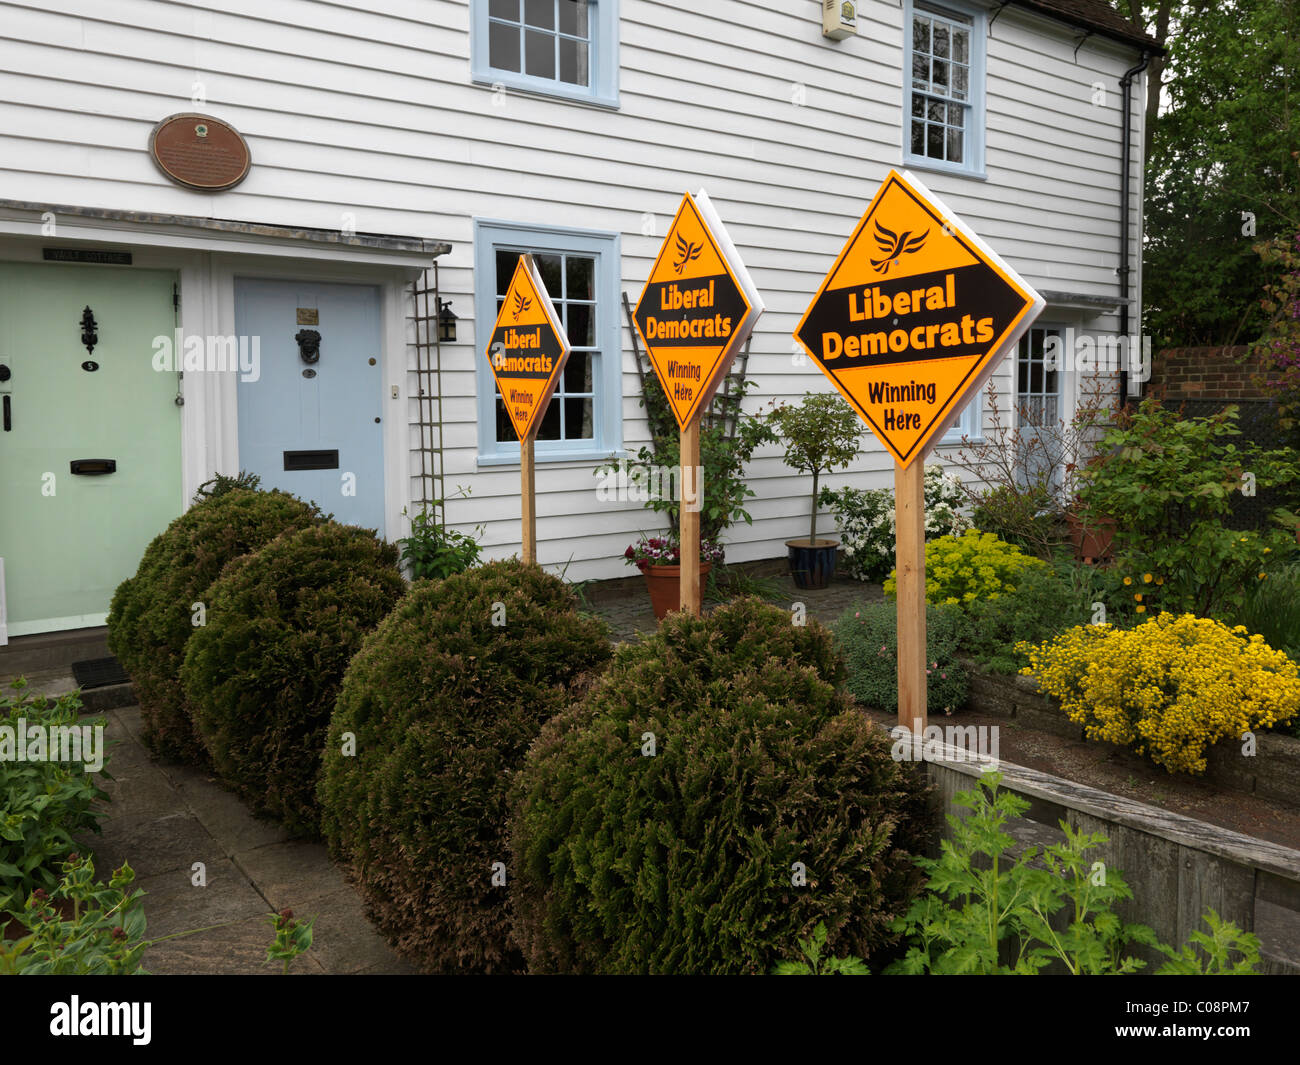 Cheam Surrey England Liberal Democrats Signs In Garden Outside weather boarded House At Election Time May 2010 - Stock Image